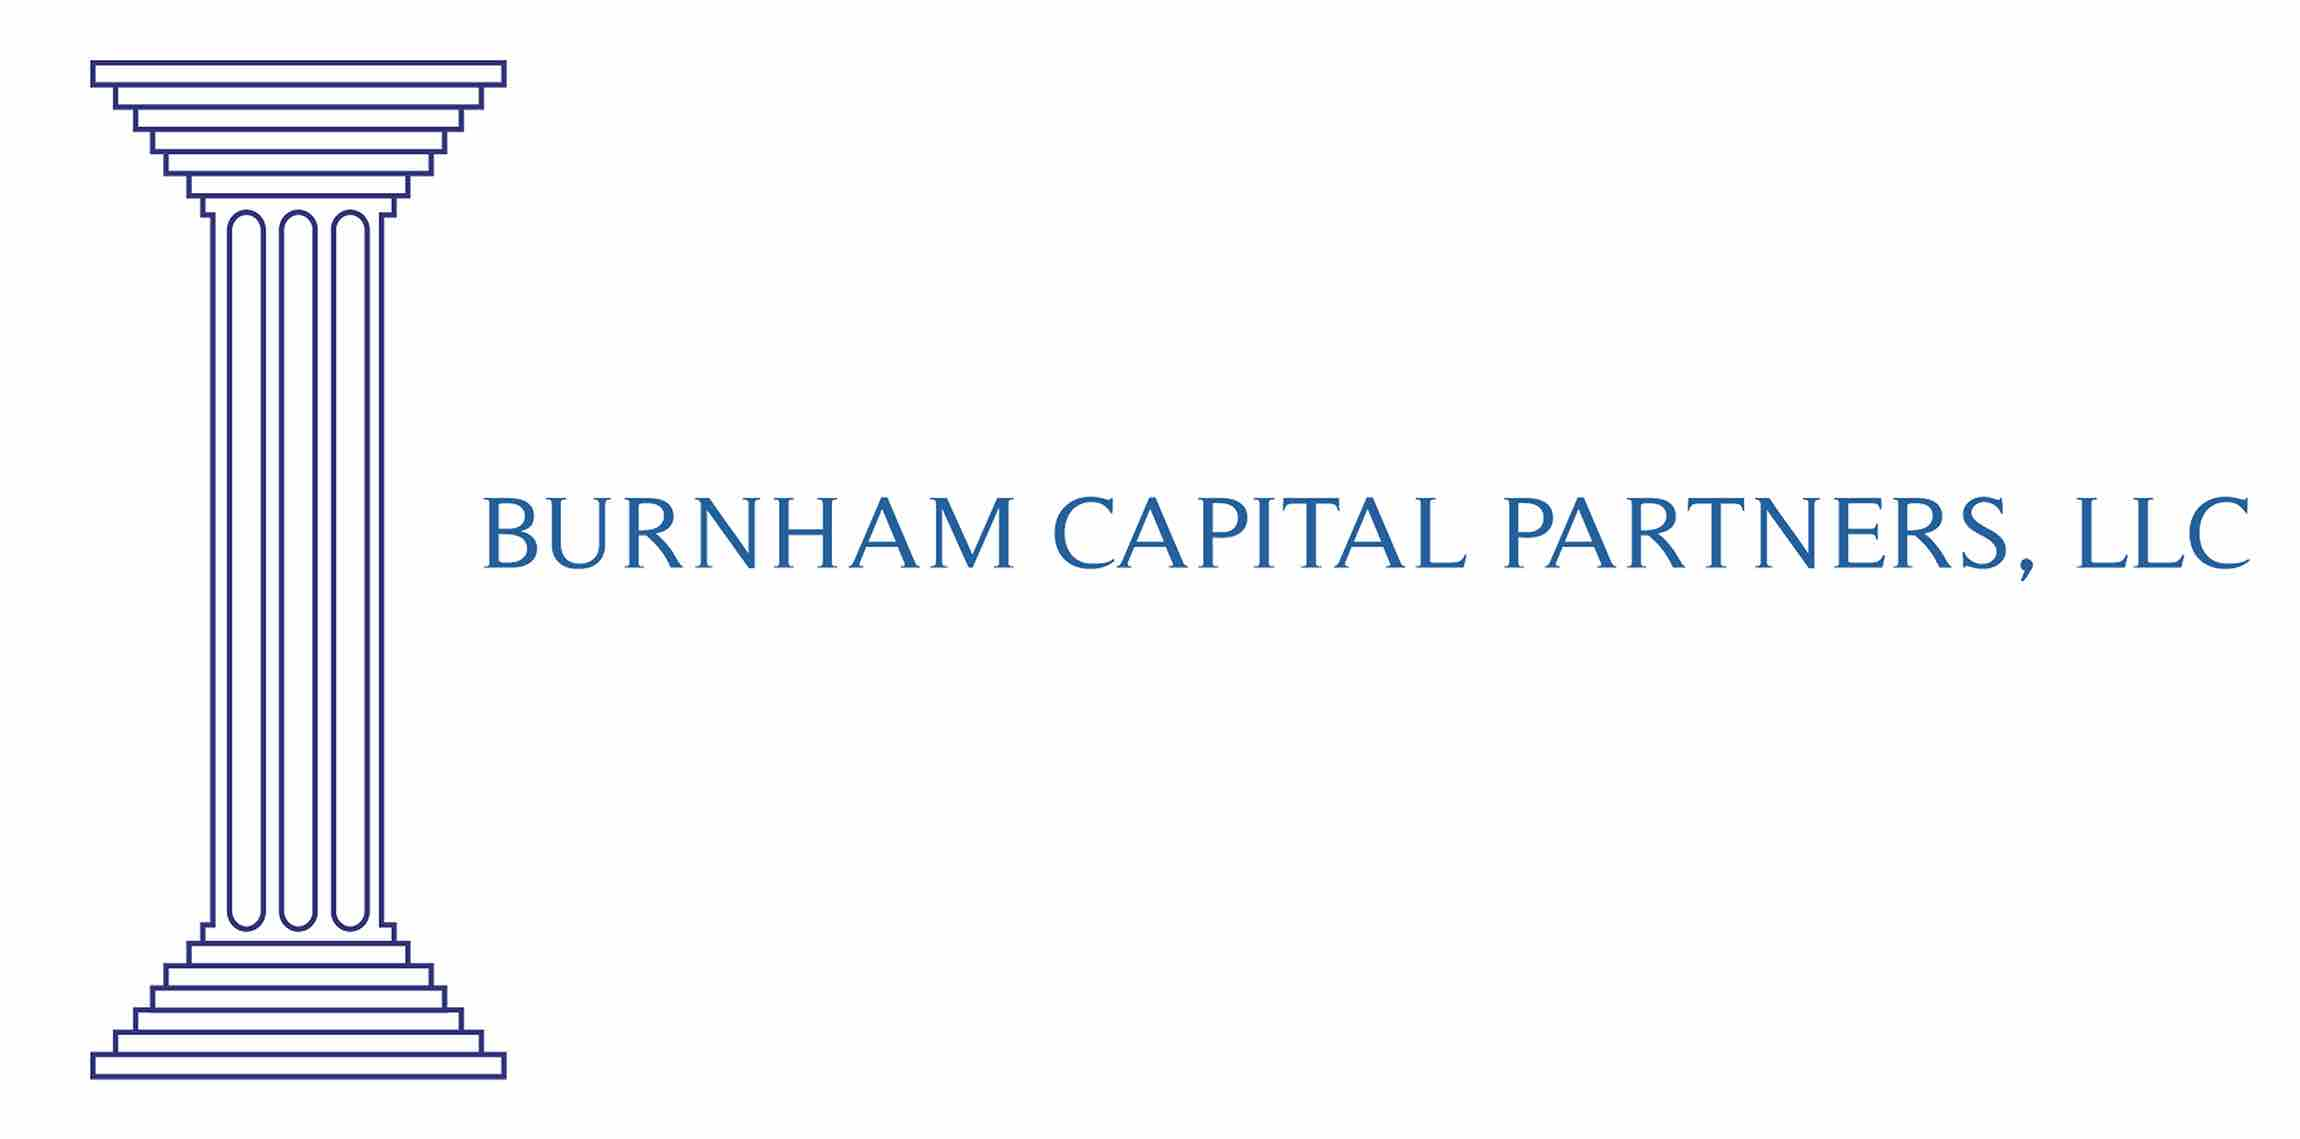 Burnham Capital